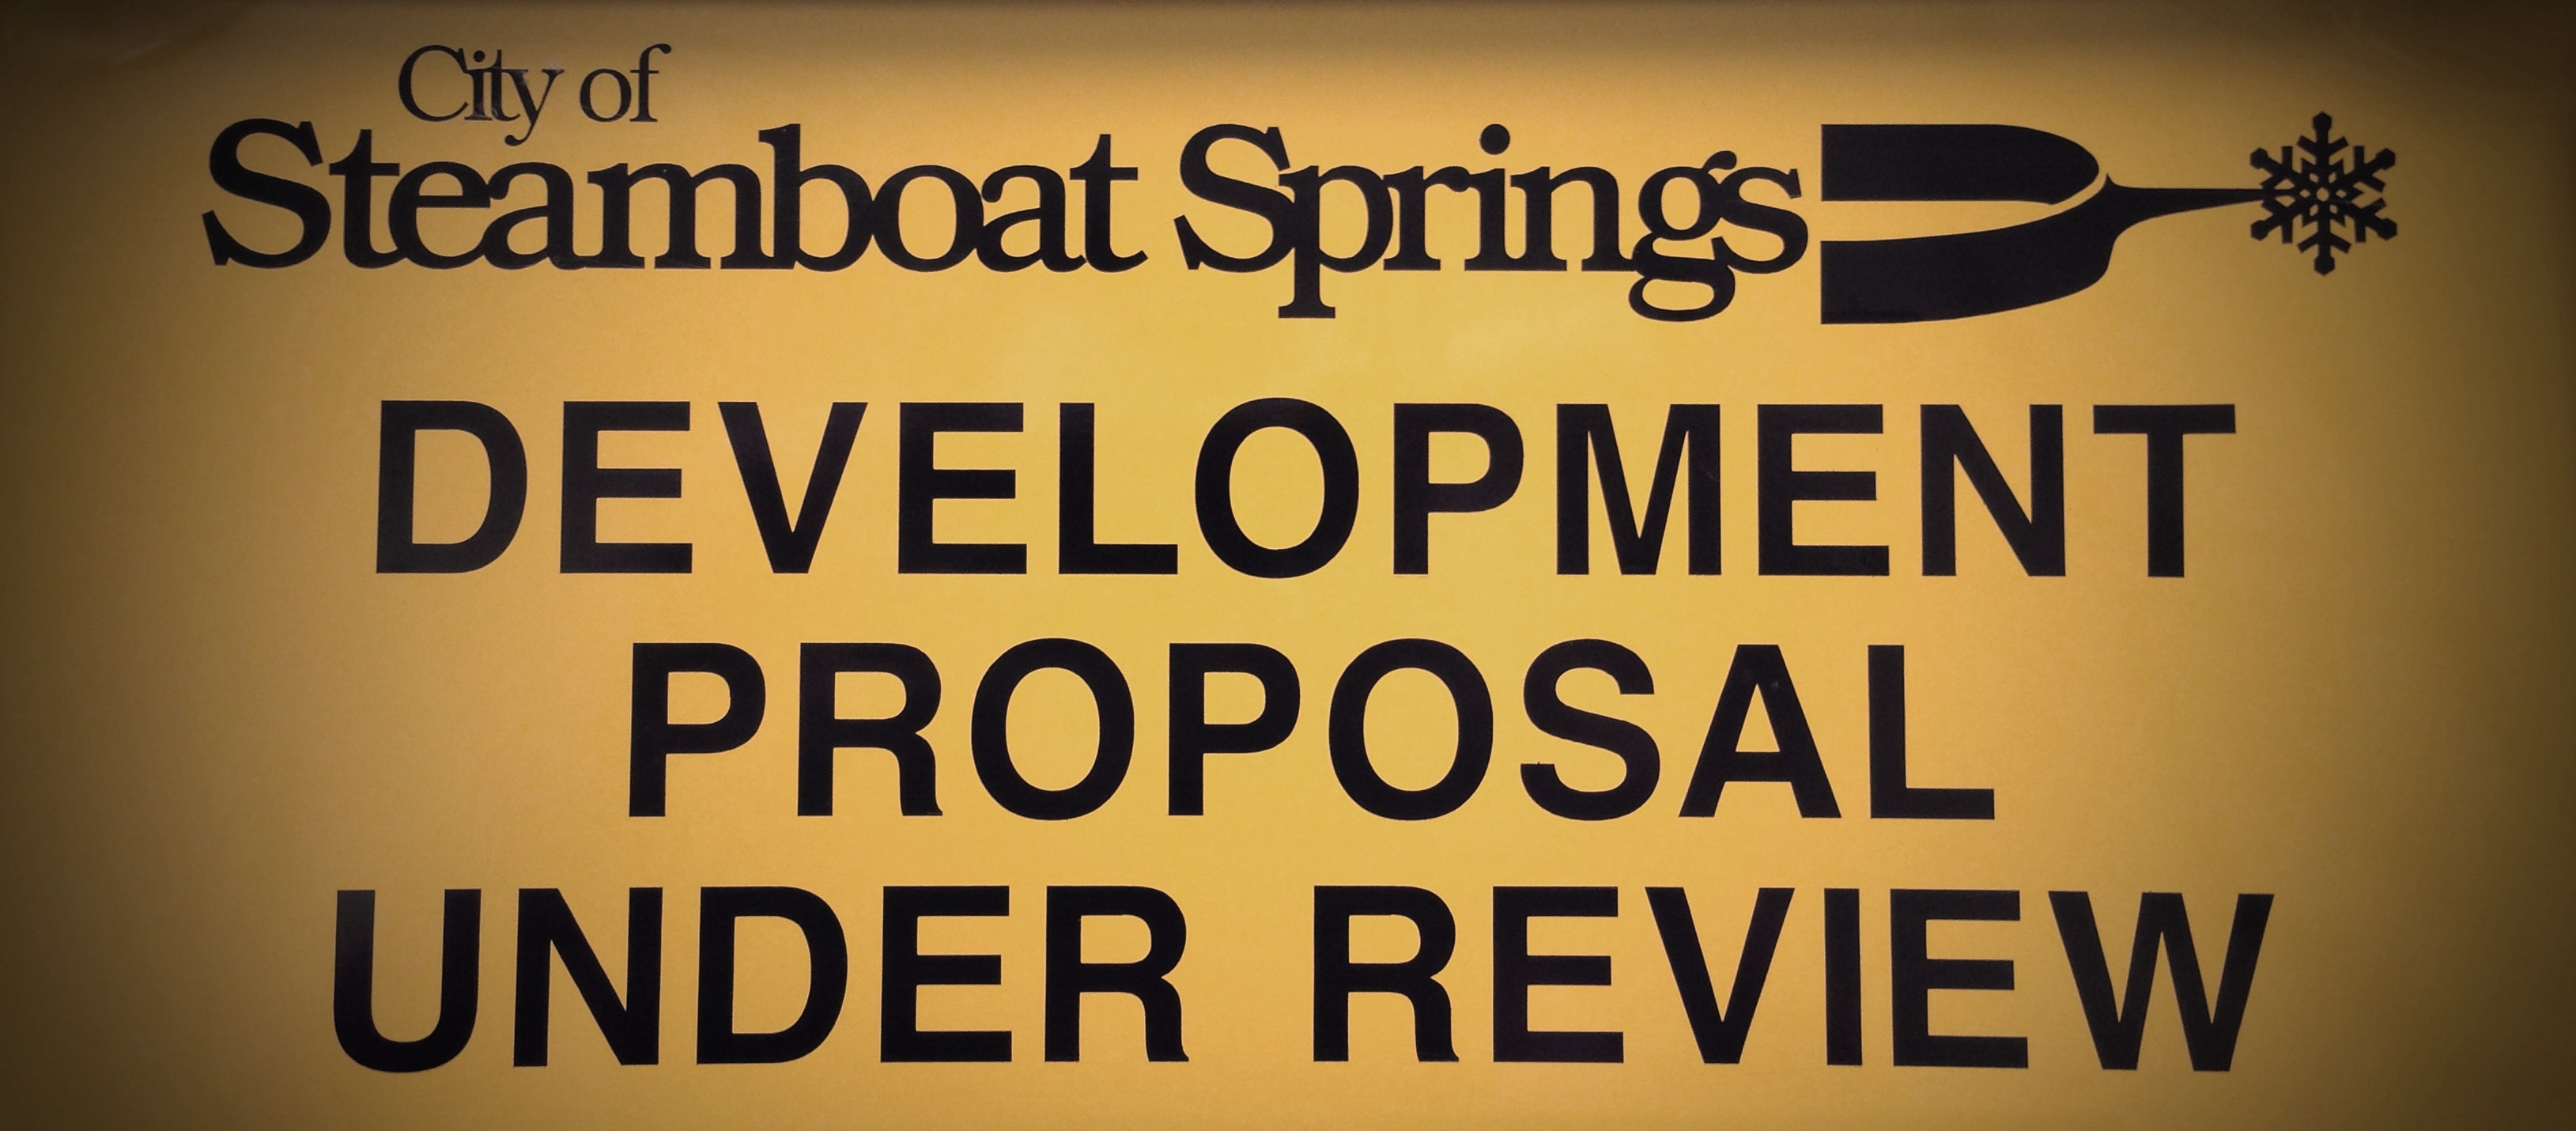 Development Proposal Under Review